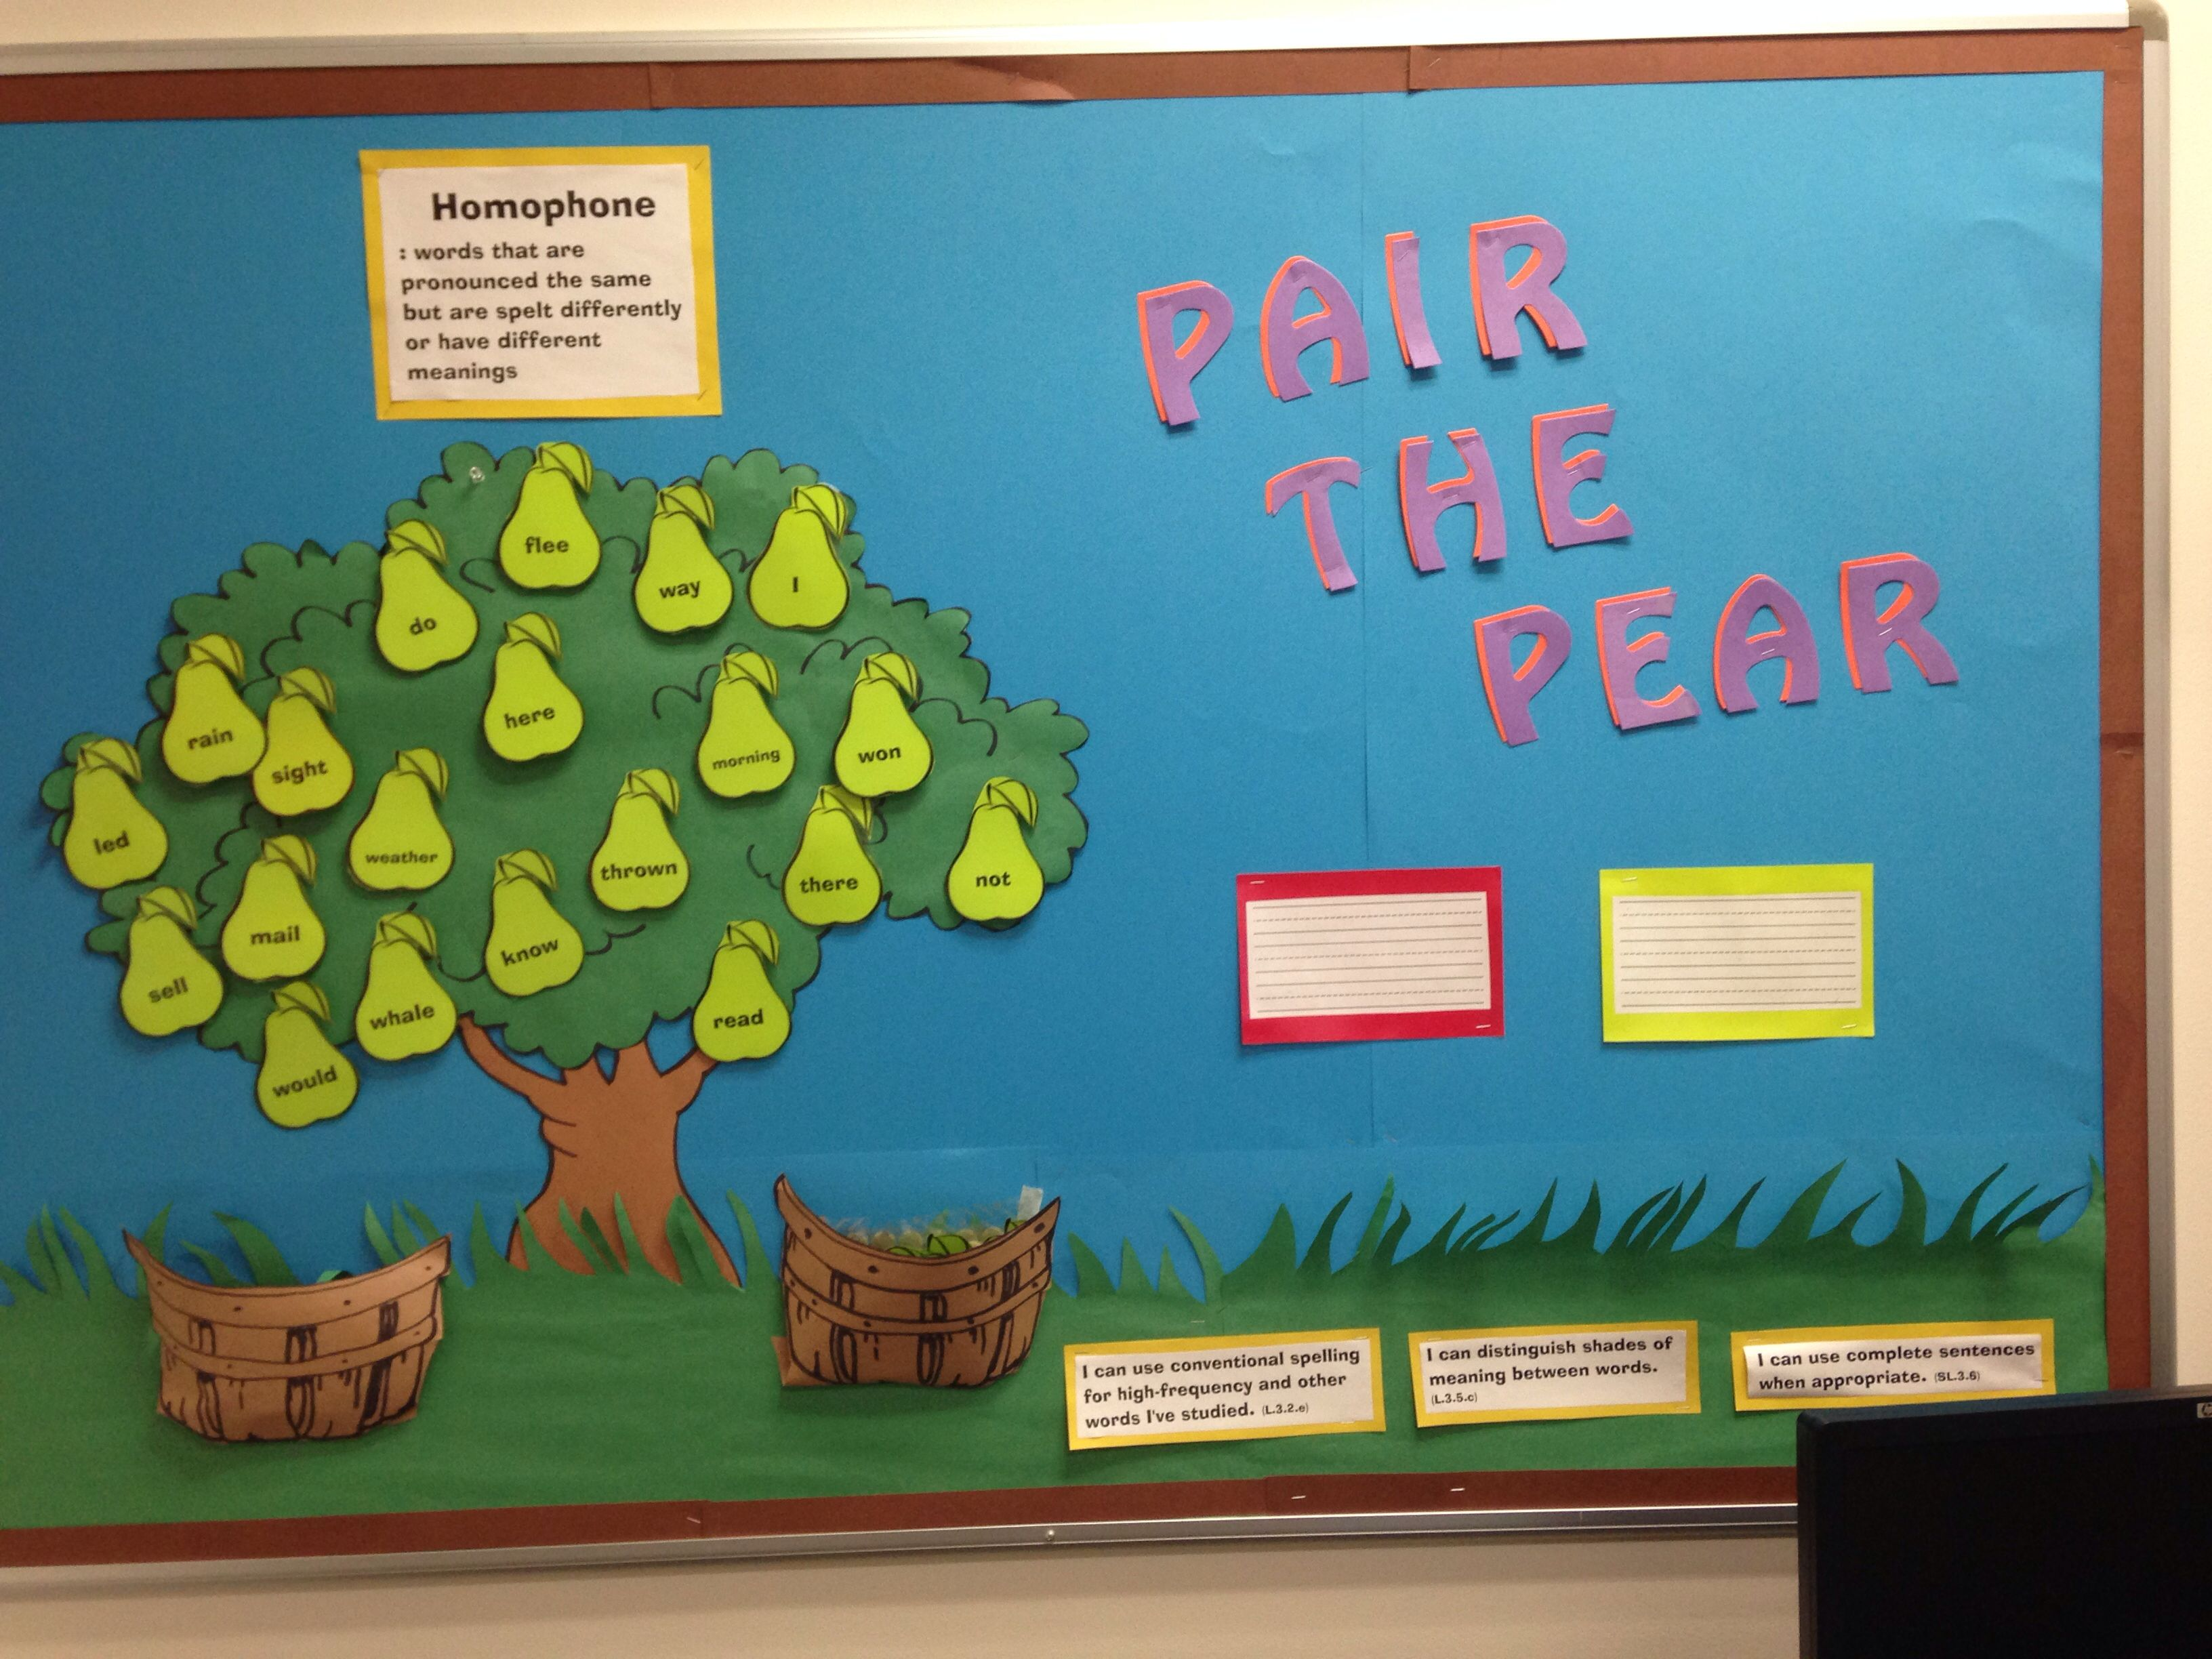 Pair The Pear Interactive Bulletin Board About Homophones